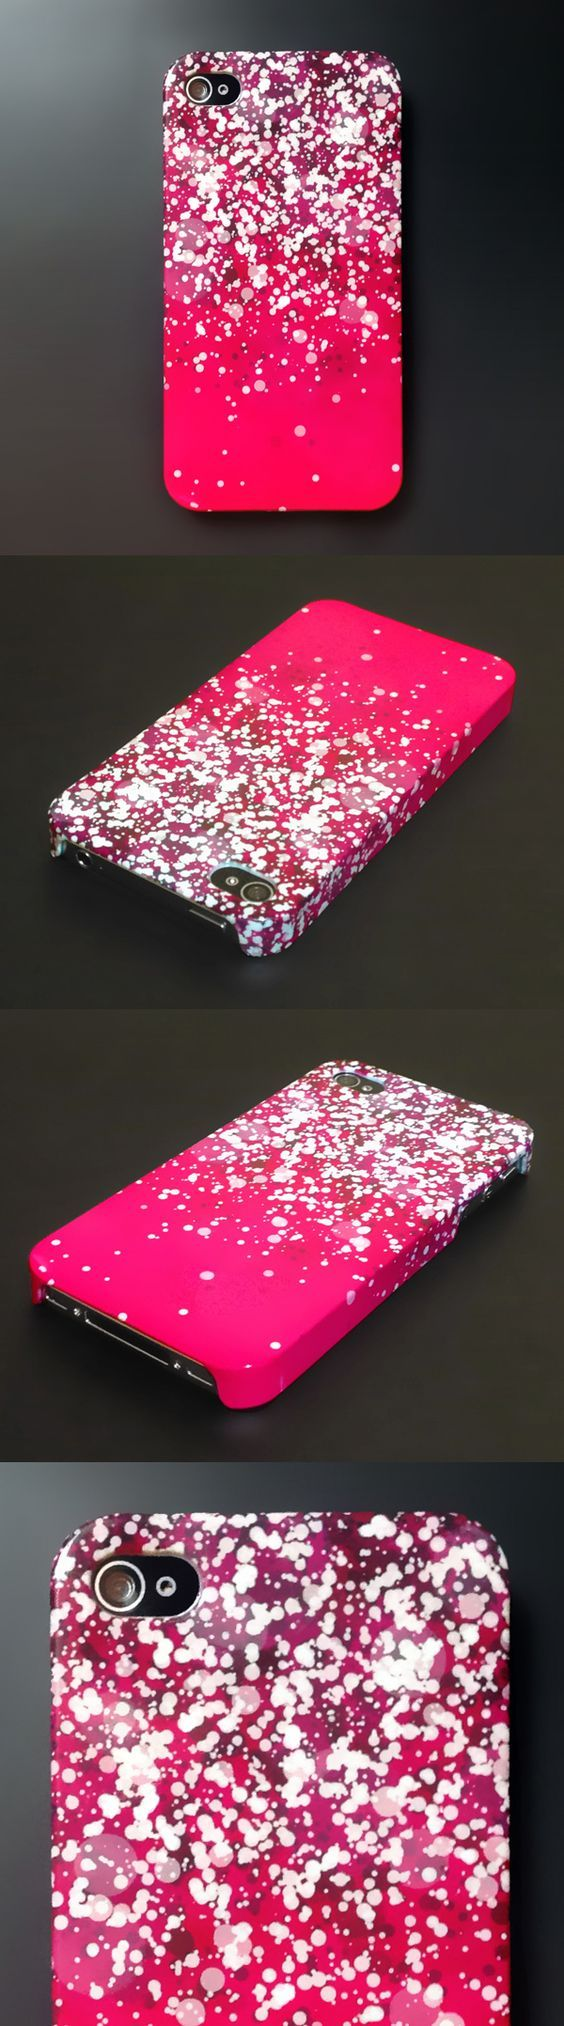 Omg i love this hot pink sparkly phone!